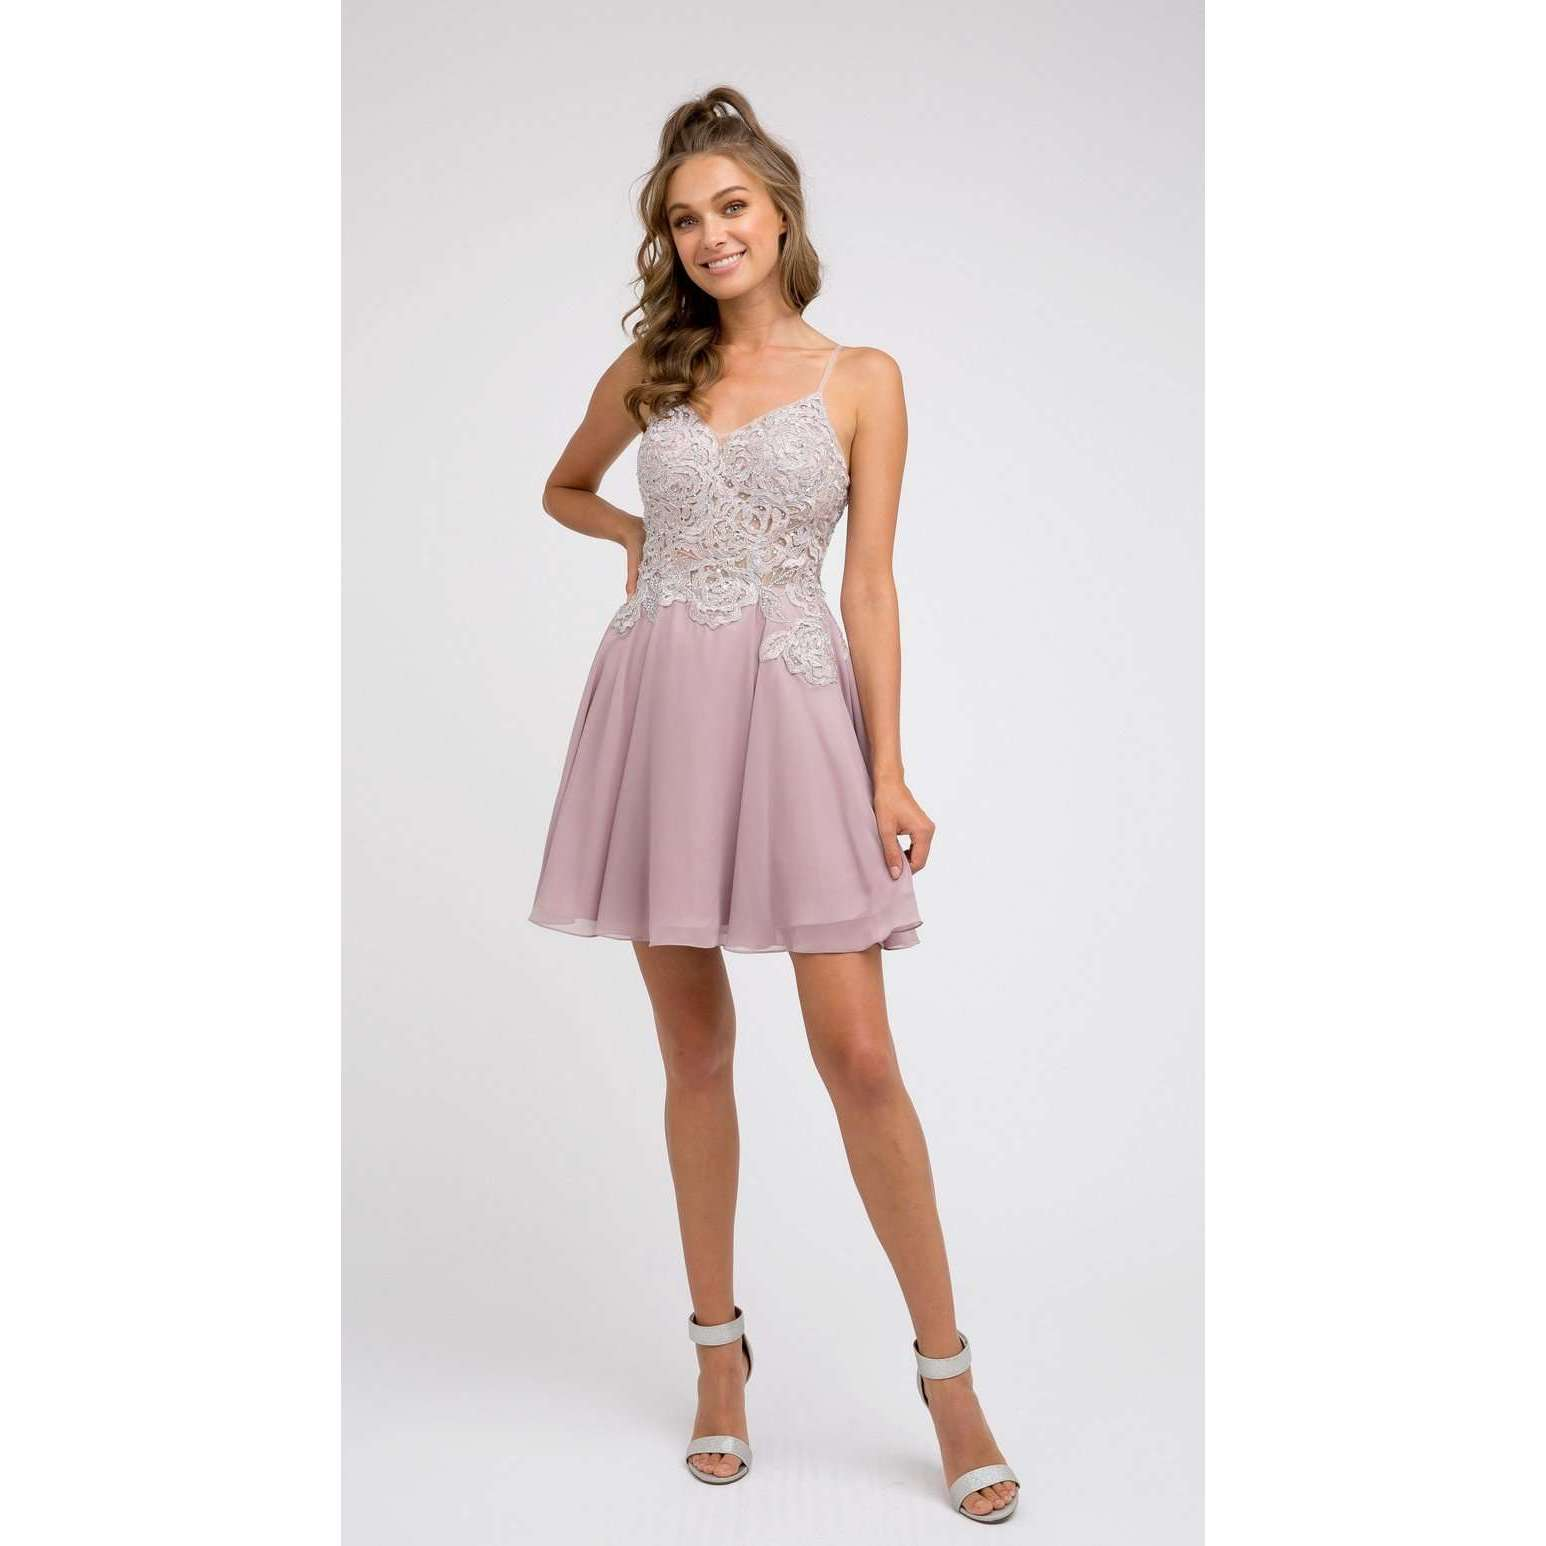 Sheer Embroidered  Bodice Chiffon Homecoming Dress 839 - Julietdresses